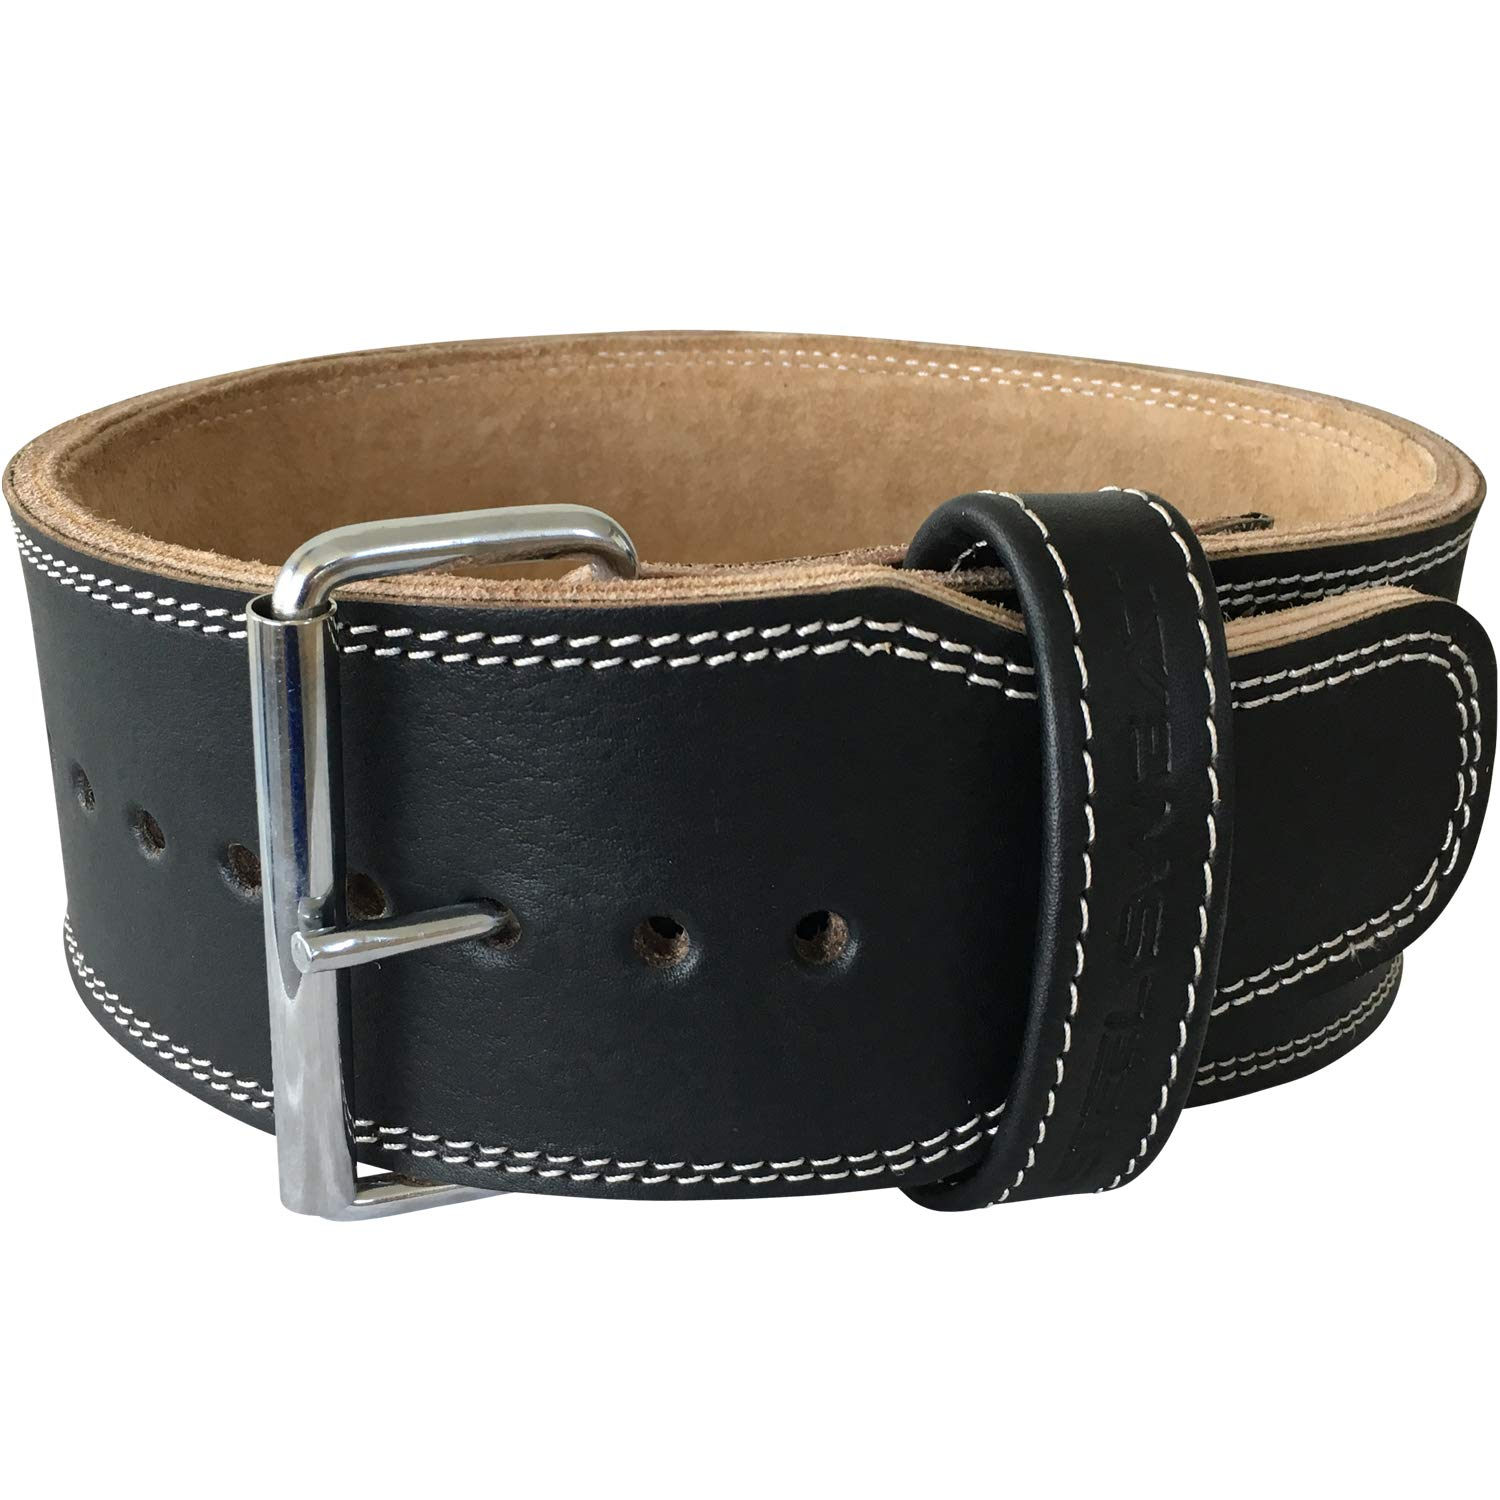 Steel Sweat Weight Lifting Belt - 4 Inches Wide by 10mm - Single Prong Powerlifting Belt That's Heavy Duty - Genuine Cowhide Leather - X-Large Texus by Steel Sweat (Image #2)